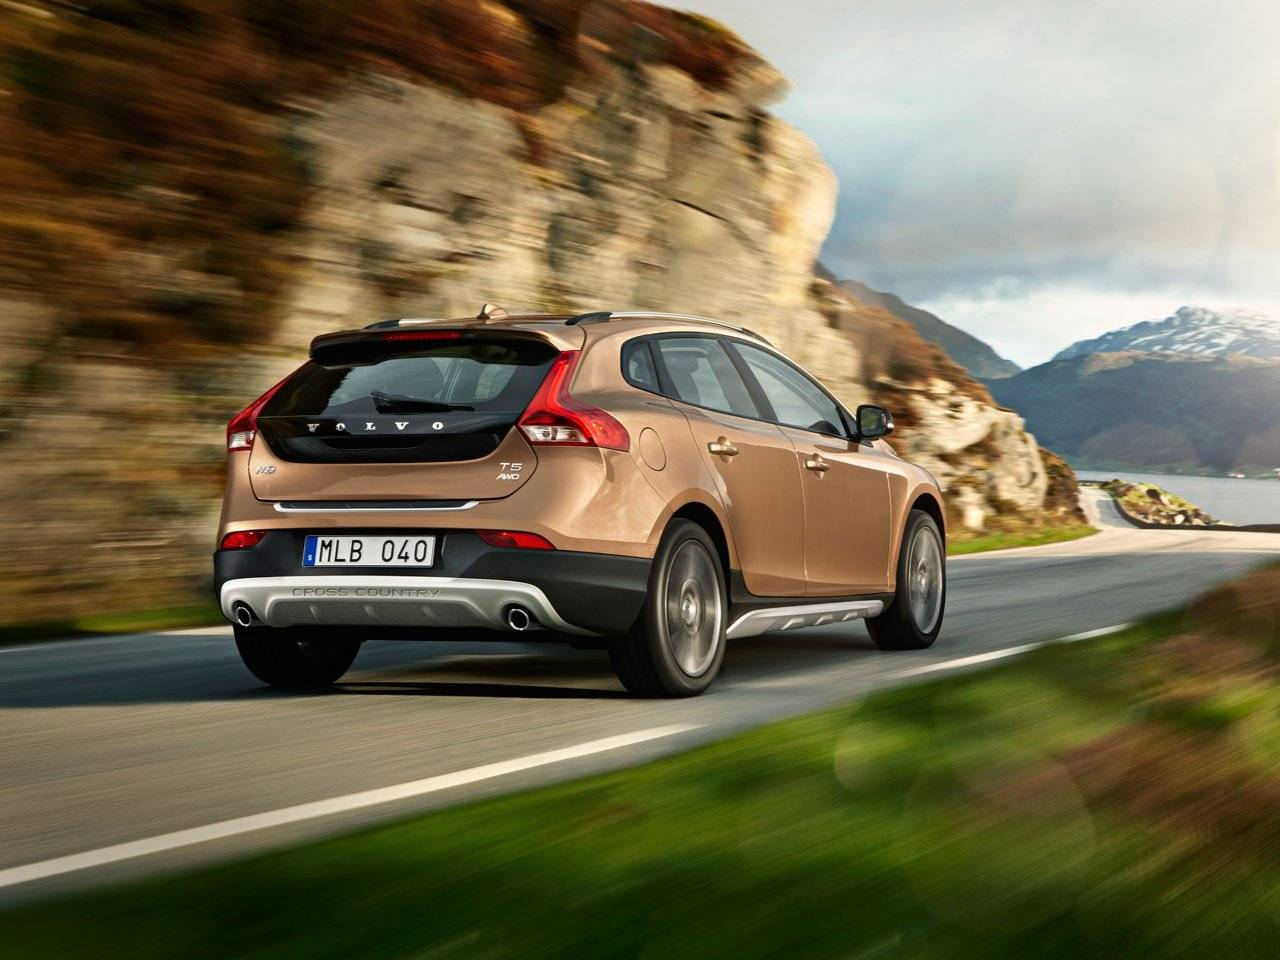 stoer ding volvo v40 cross country xc40 autonieuws. Black Bedroom Furniture Sets. Home Design Ideas